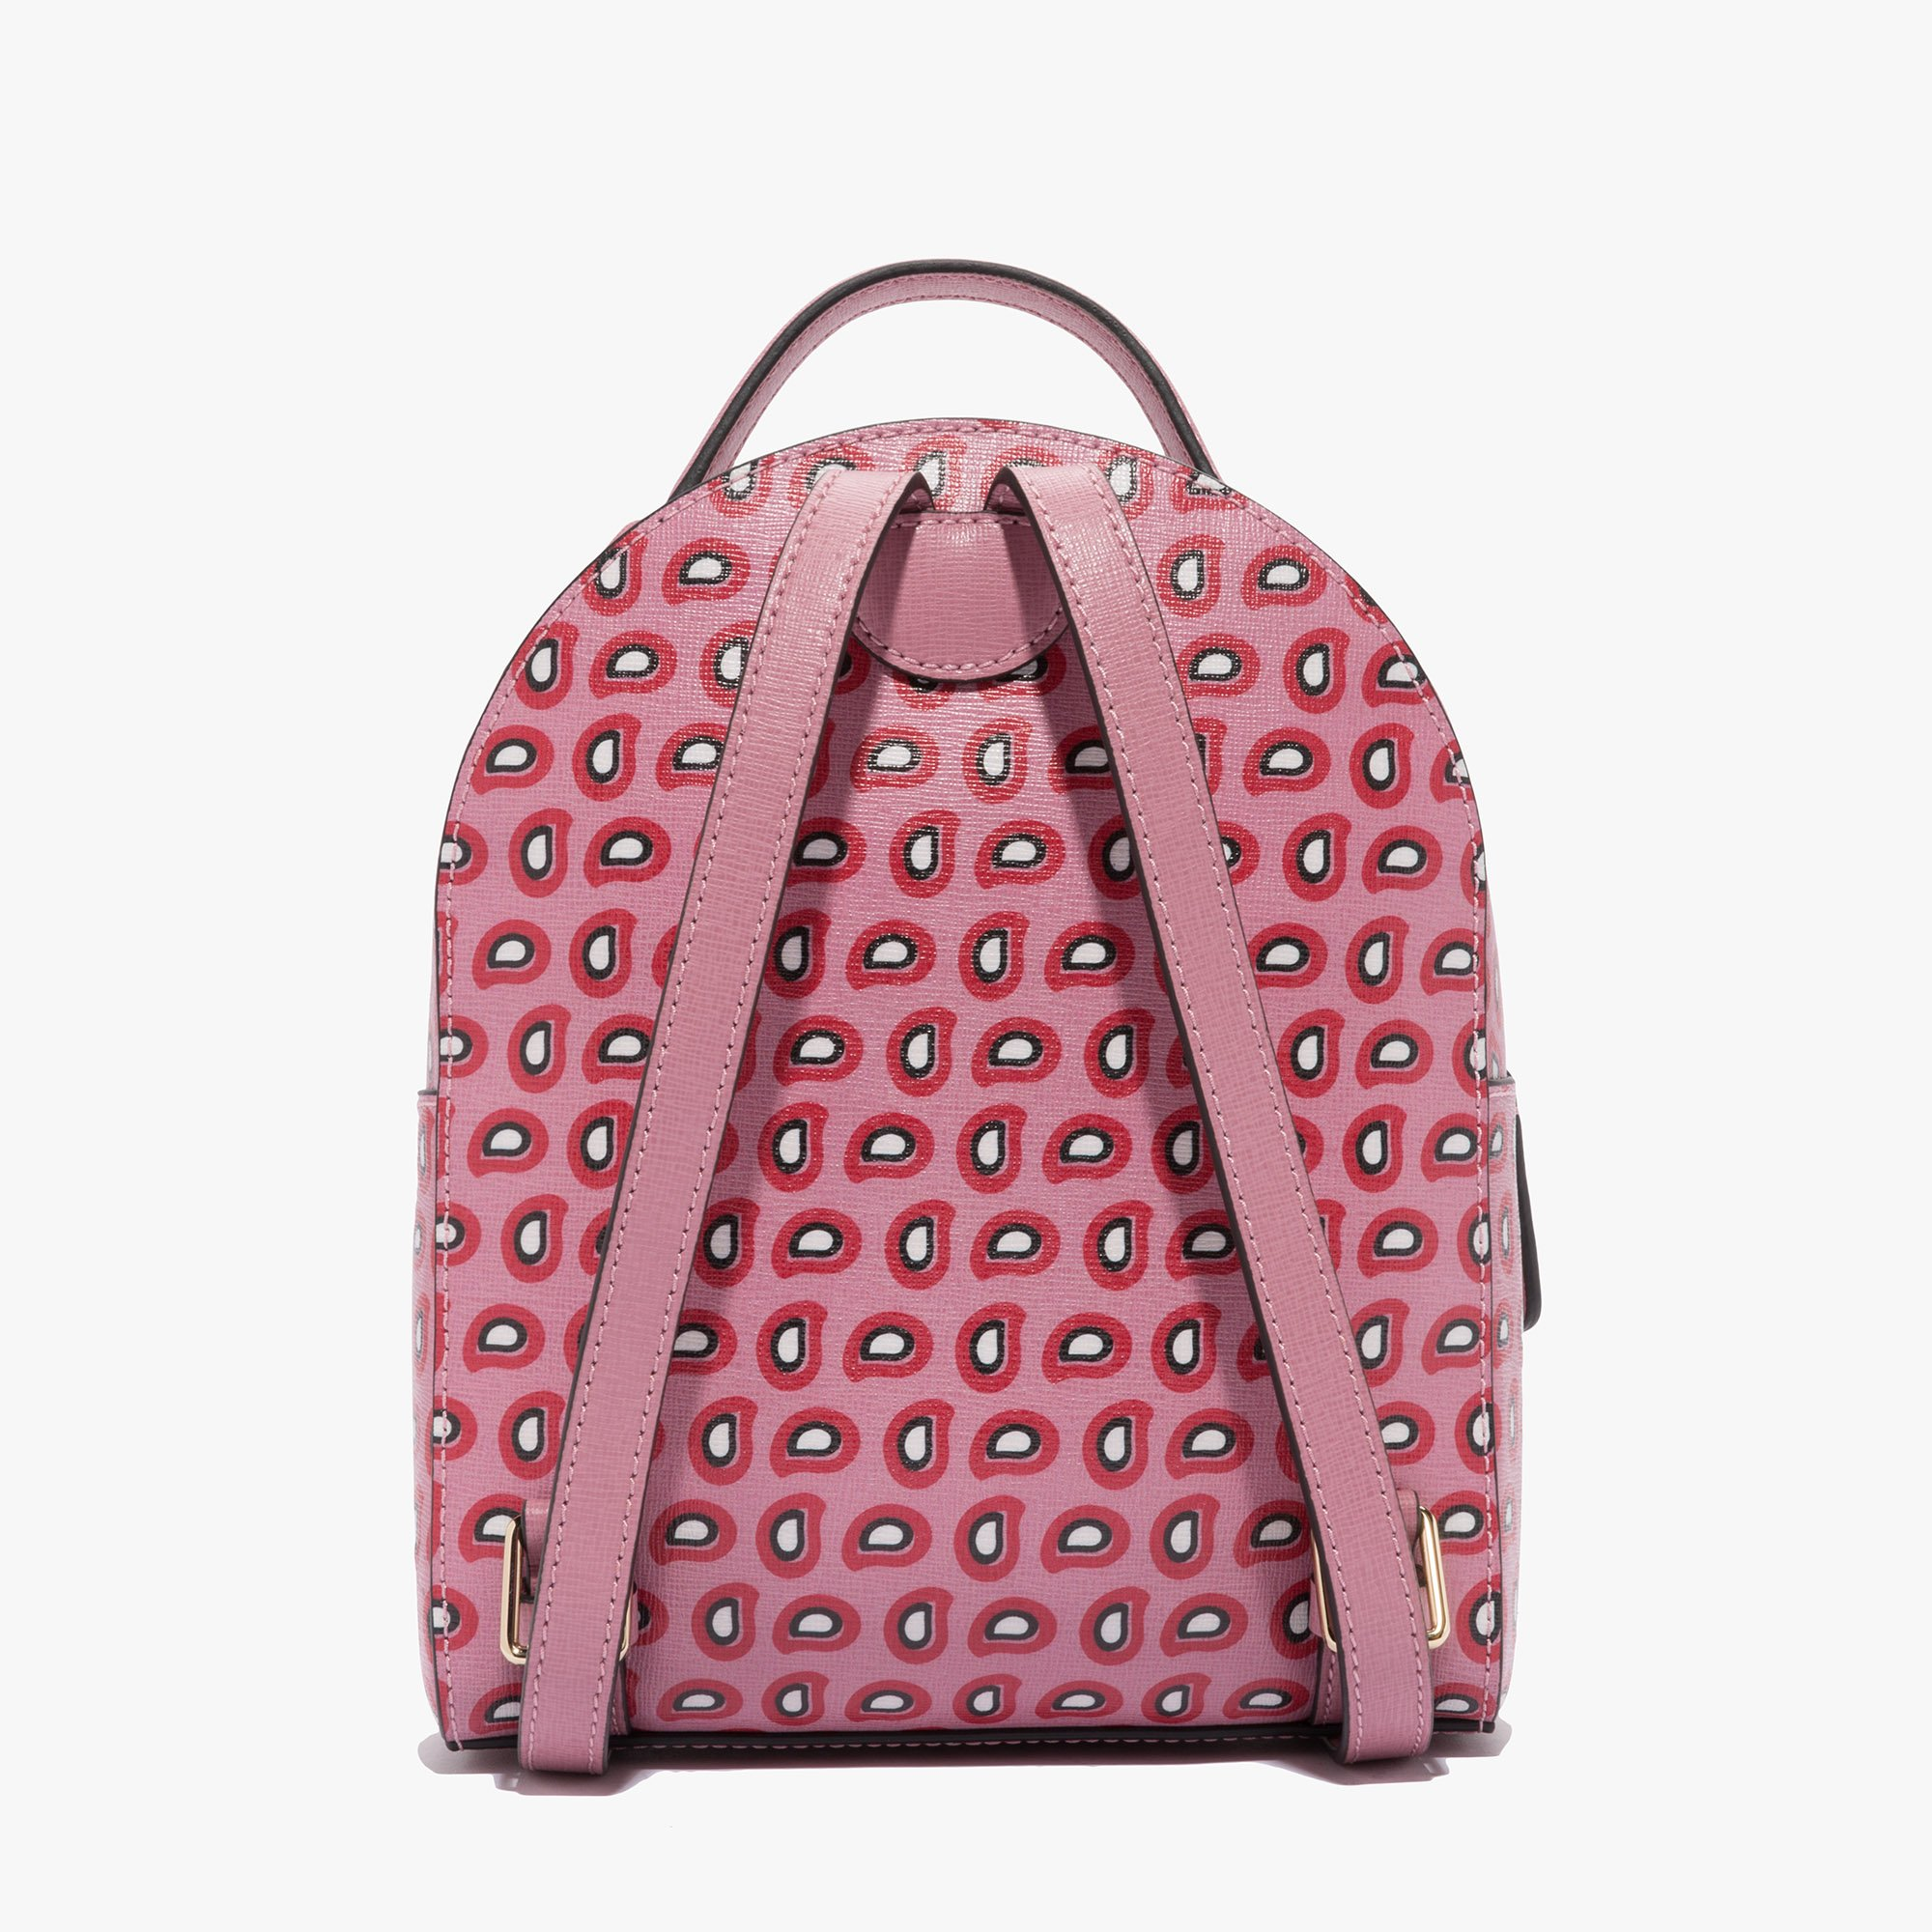 Clementine printed saffiano leather mini backpack